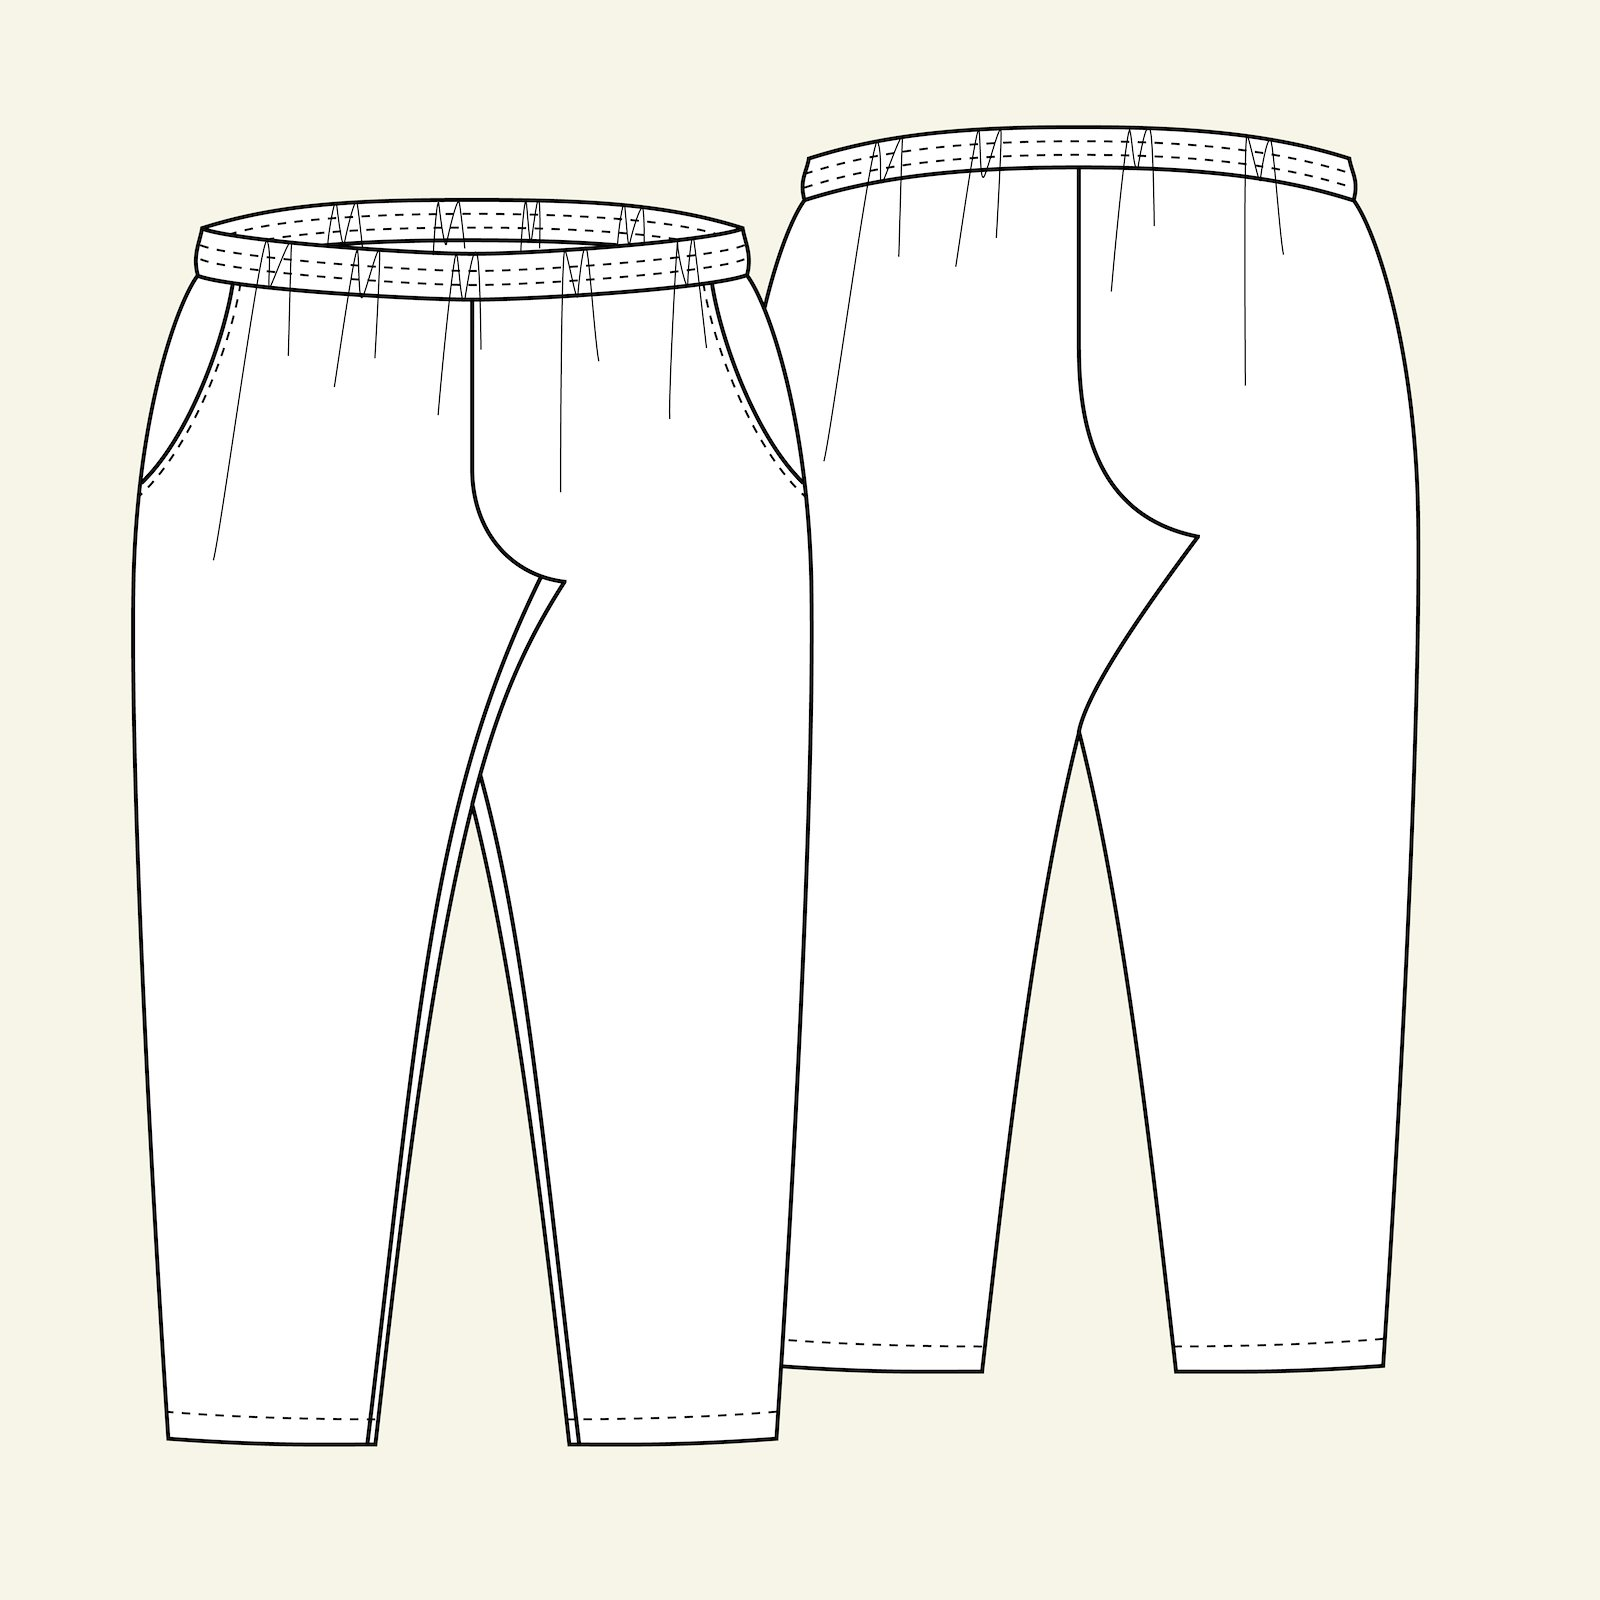 Trousers, 42/14 p20042_pack